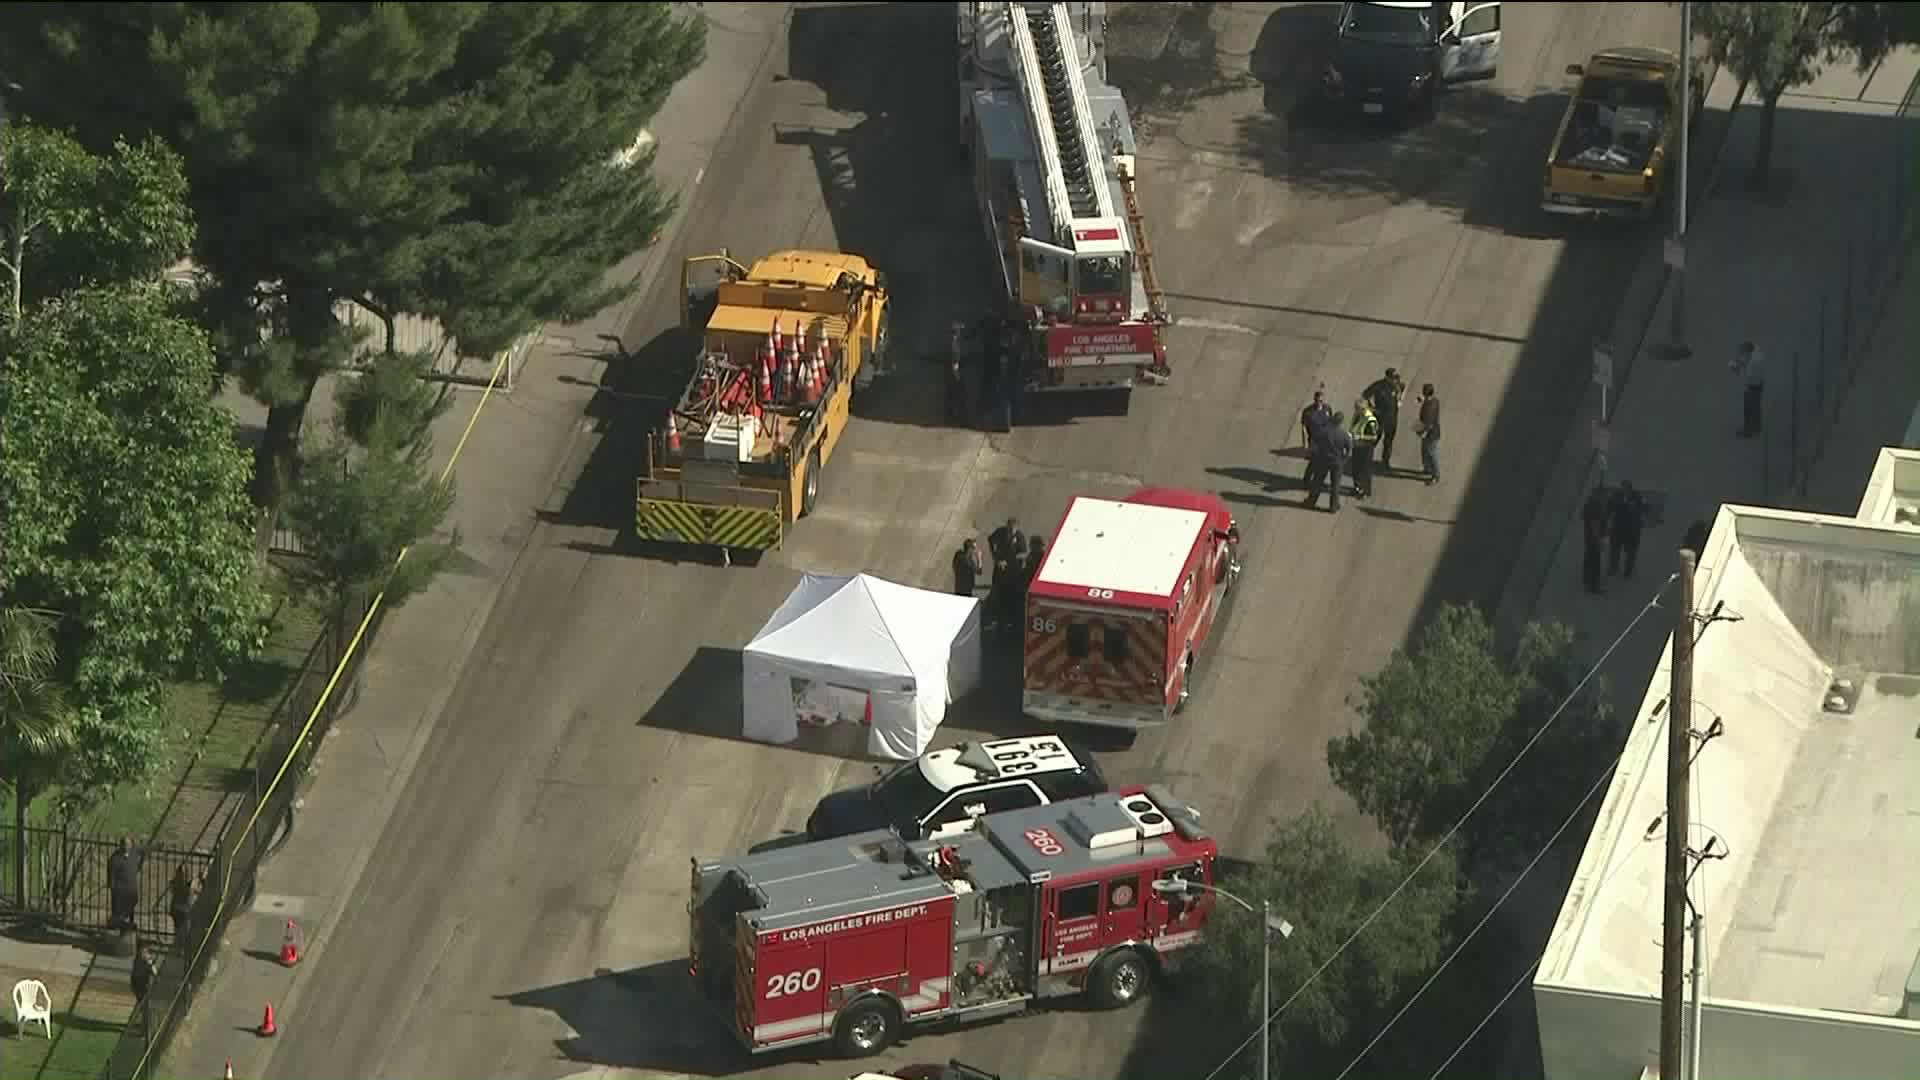 A worker fell from a truck and fatally struck his head along North Tujunga Avenue in North Hollywood on June 7, 2019. (Credit: KTLA)